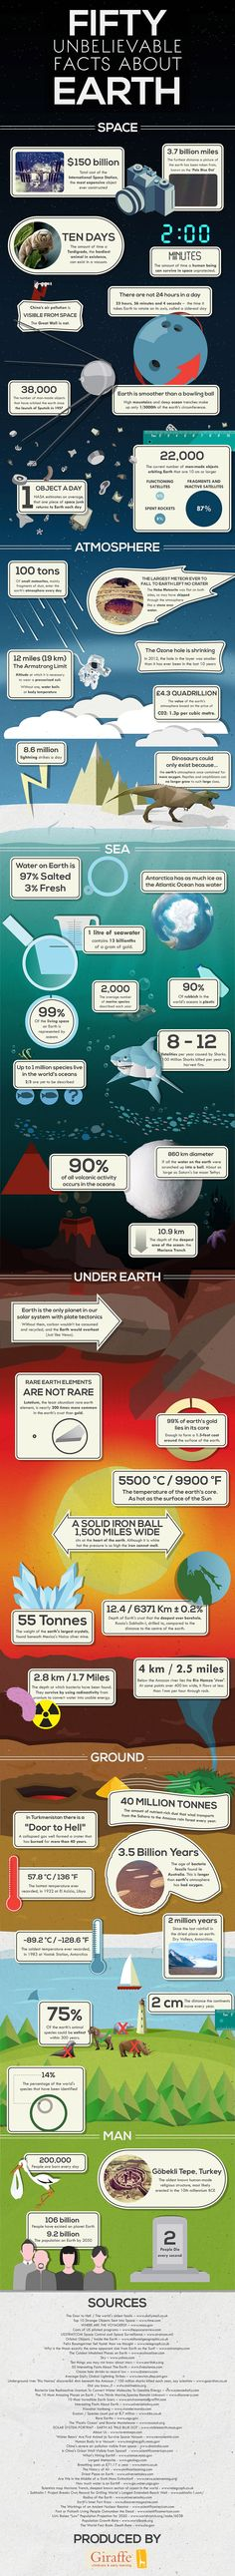 50 Unbelievable Facts About Earth - these are awesome facts.